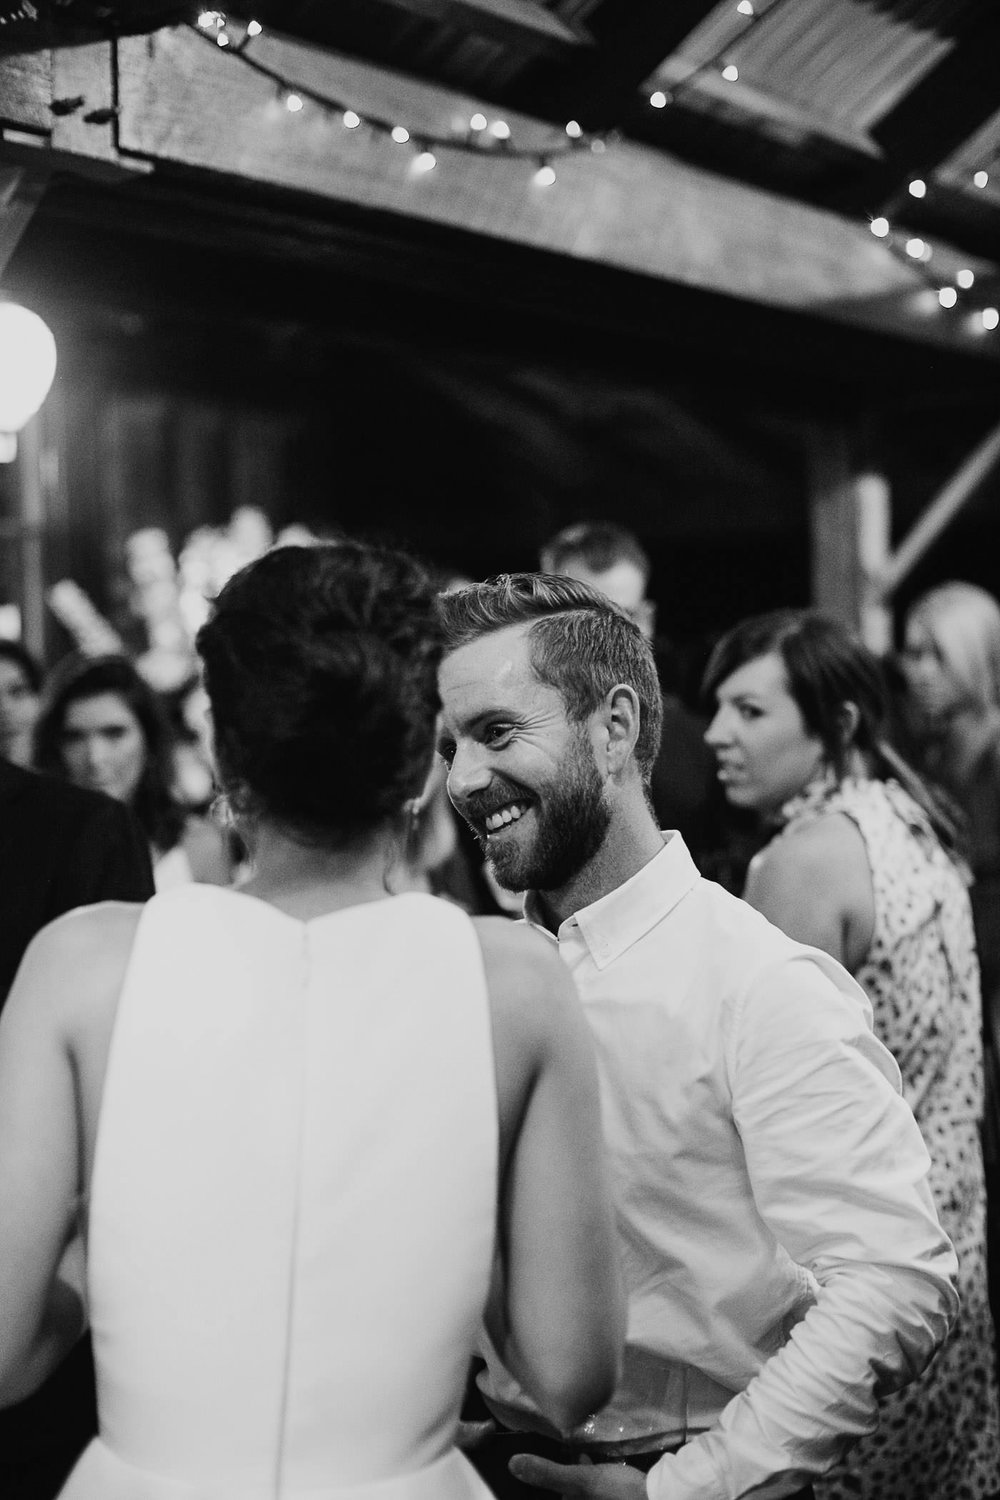 justinaaron-catalina-rosebay-wedding-courtney-alex-100.jpg